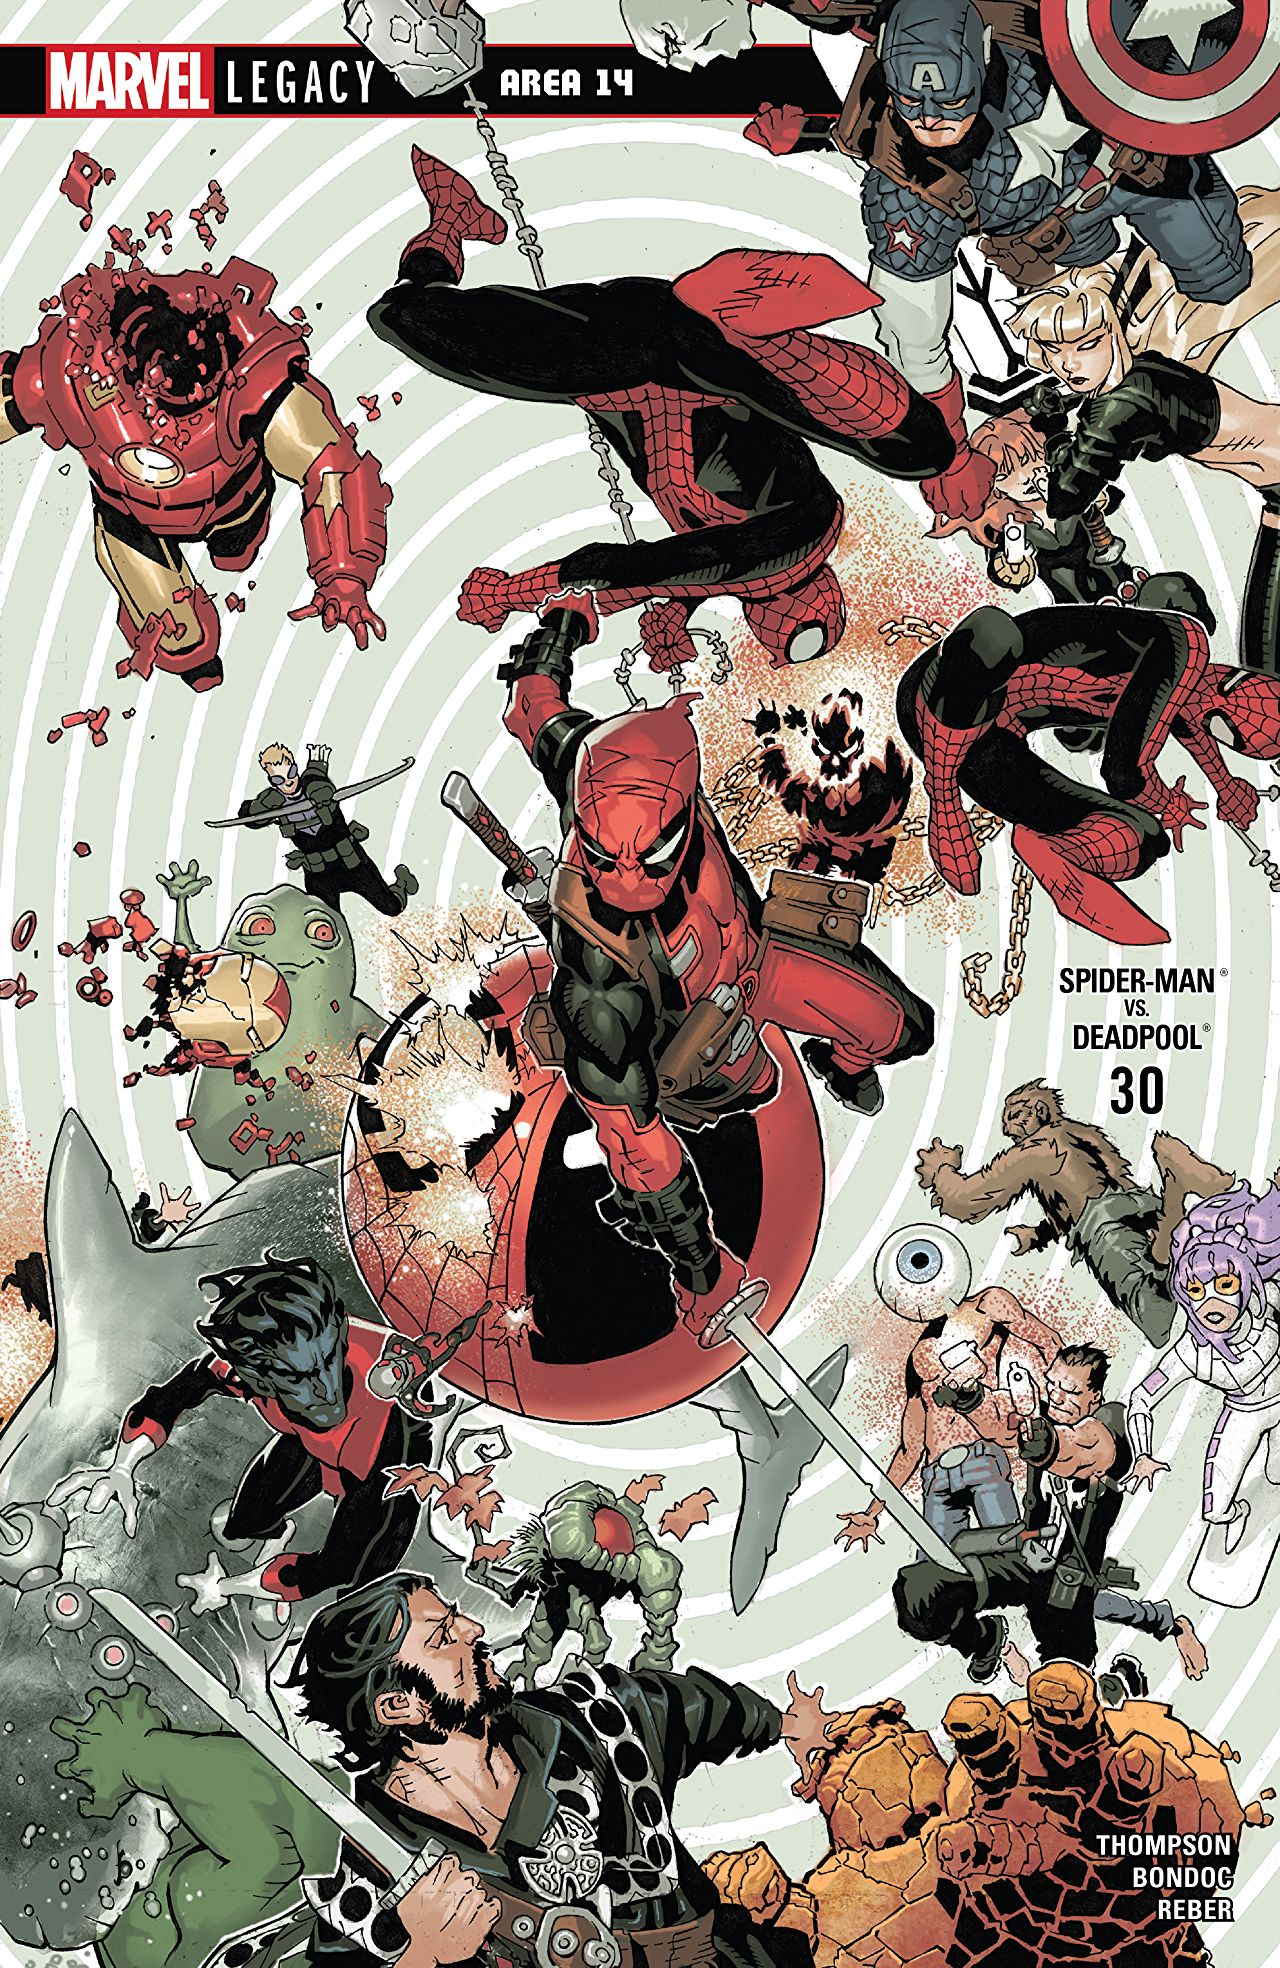 Marvel Preview: Spider-Man/Deadpool #30